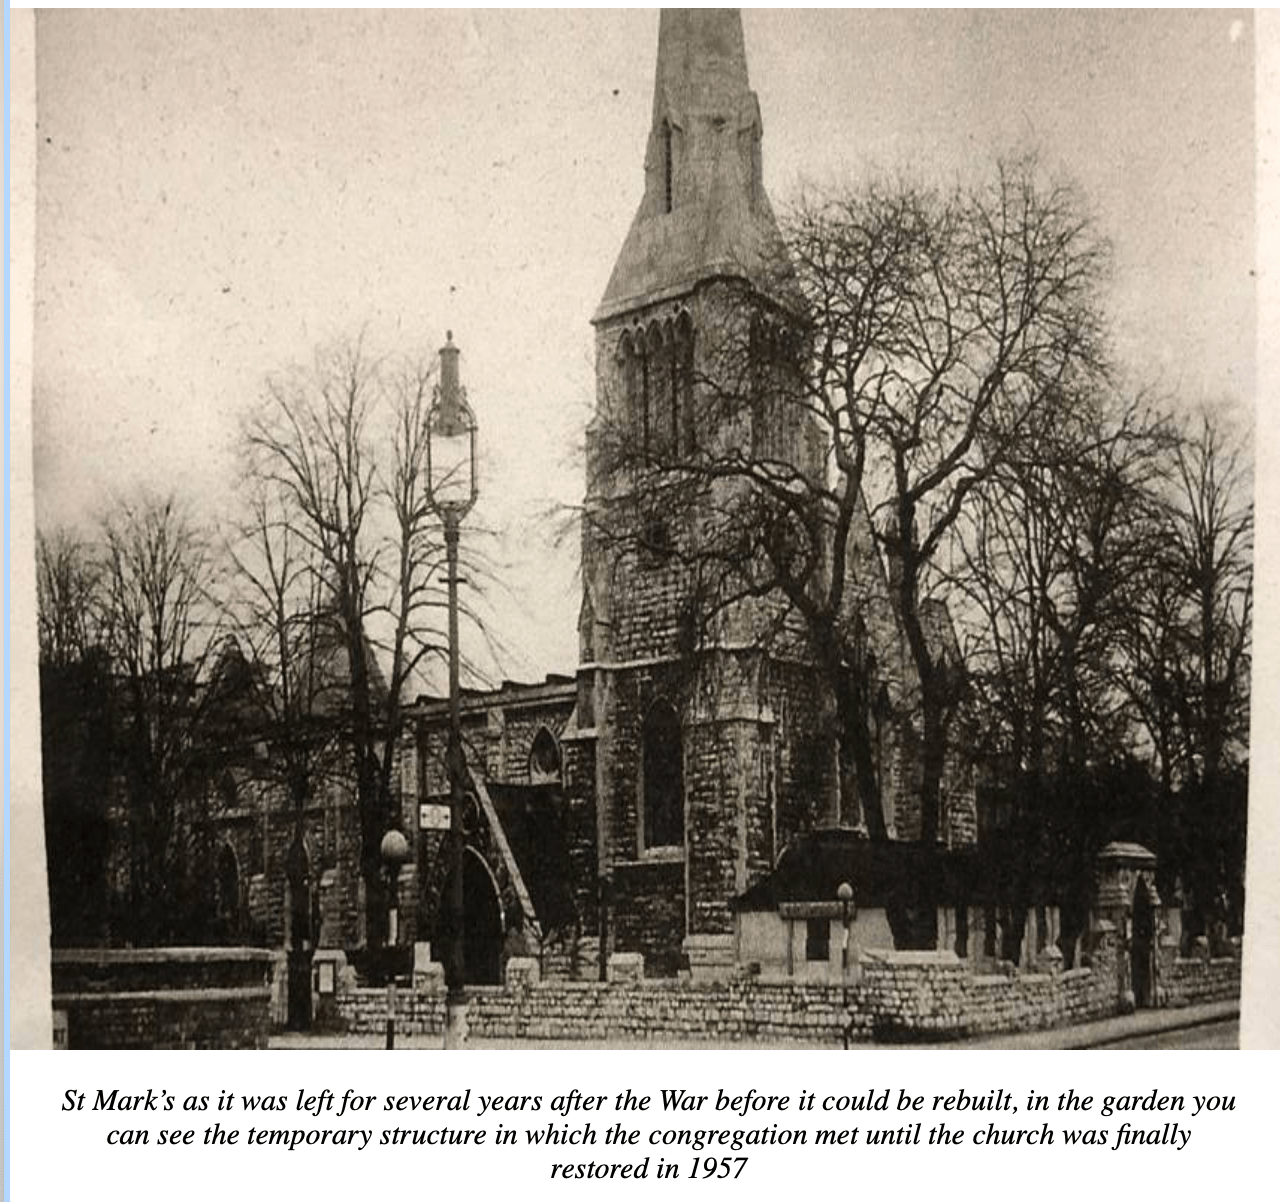 St Mark's as it was left for several years after the War before it could be rebuilt, in the garden you can see the temporary structure in which the congregation met until the church was finally restored in 1957